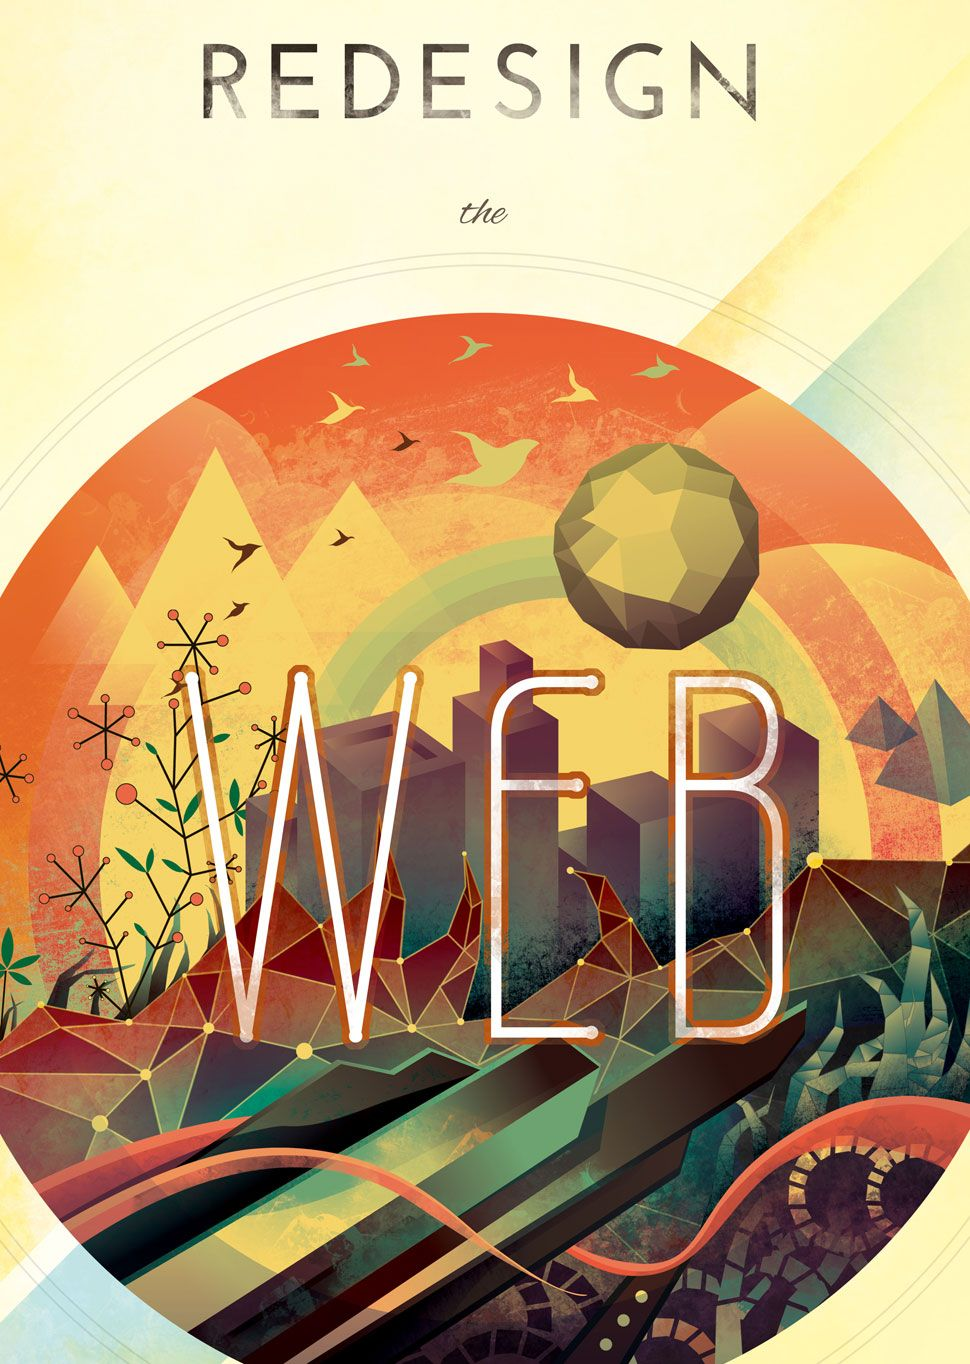 Redesign The Web Poster by ndesign-studio  bit, cable, motherboard, chip, data, hardware, metal, points, wires, geometric, high tech, vector, texture, color, shiny, warm, dystopian, adventure, web